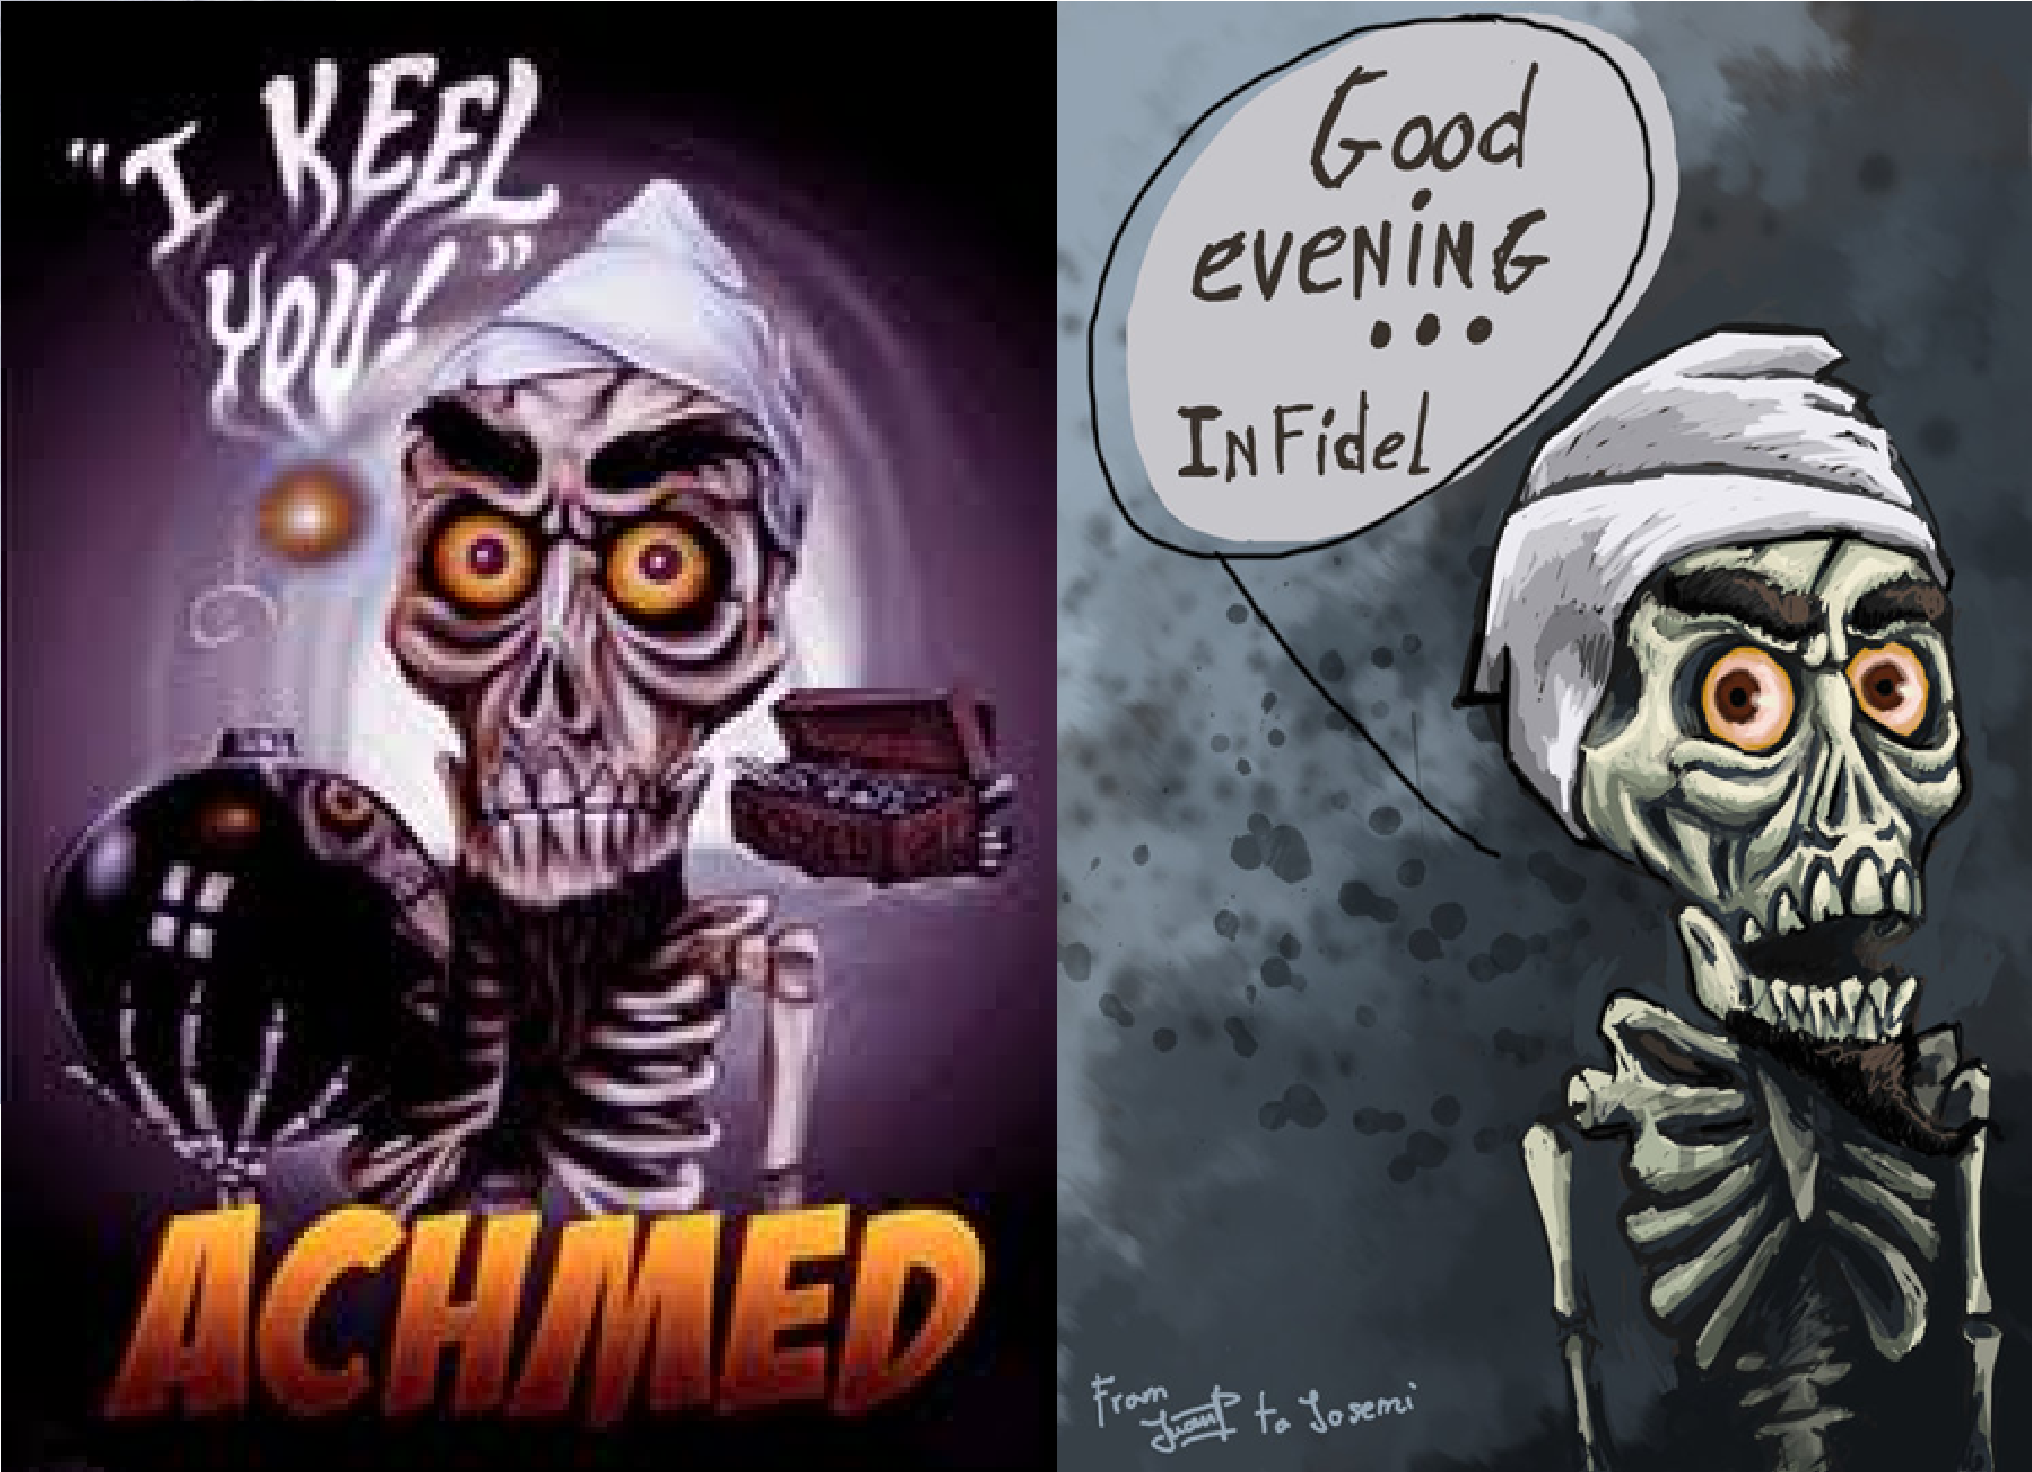 Achmed dead terrorist quotes for Achmed the dead terrorist halloween decoration